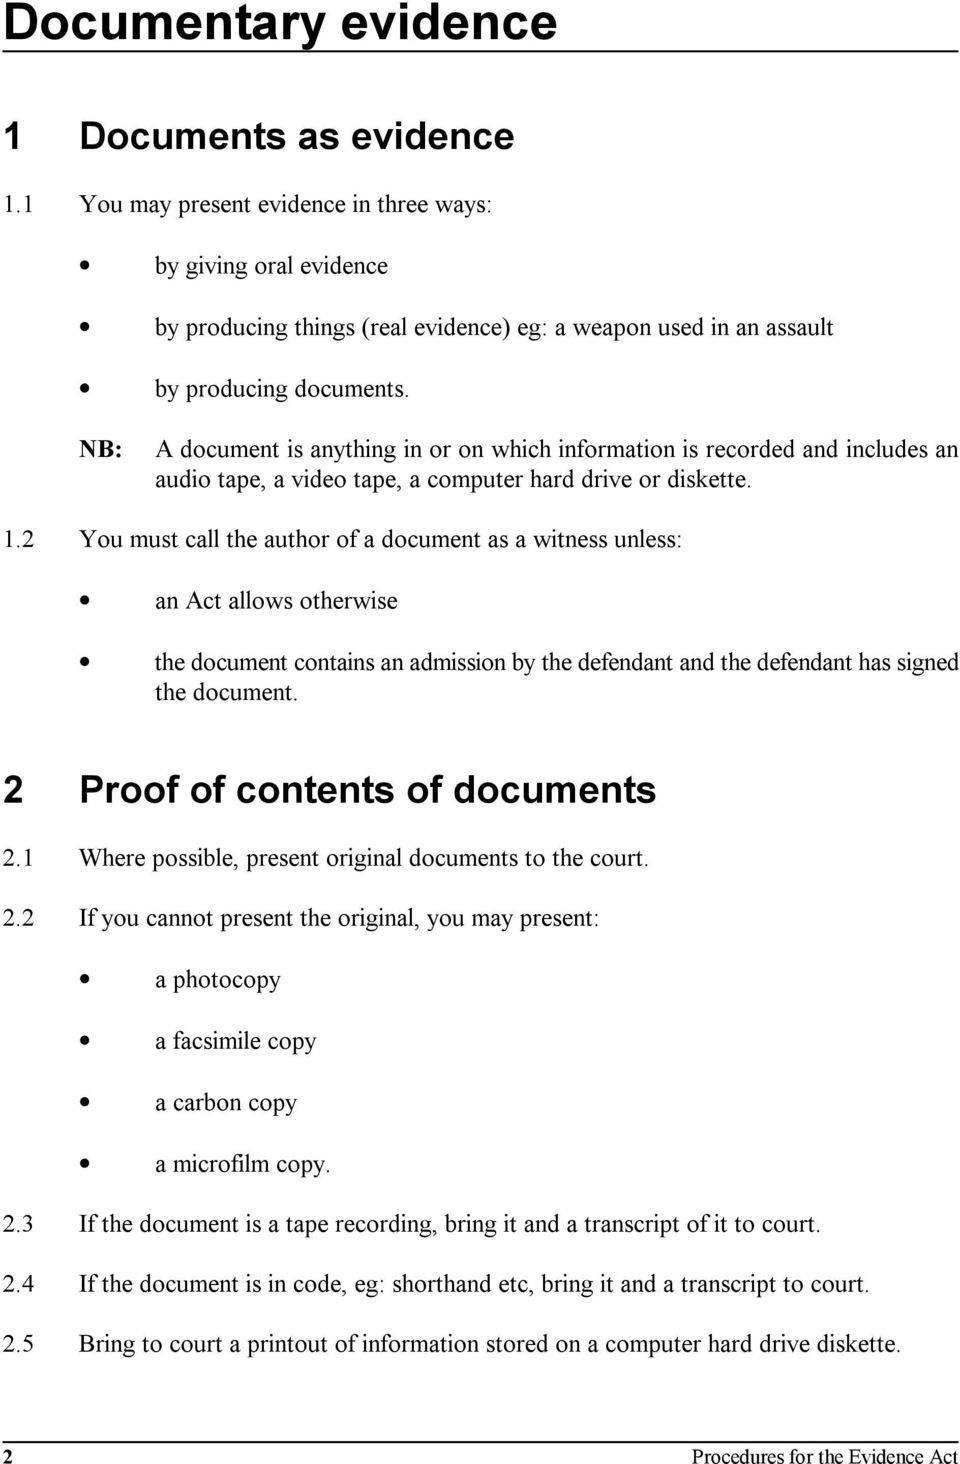 NB: A document is anything in or on which information is recorded and includes an audio tape, a video tape, a computer hard drive or diskette. 1.